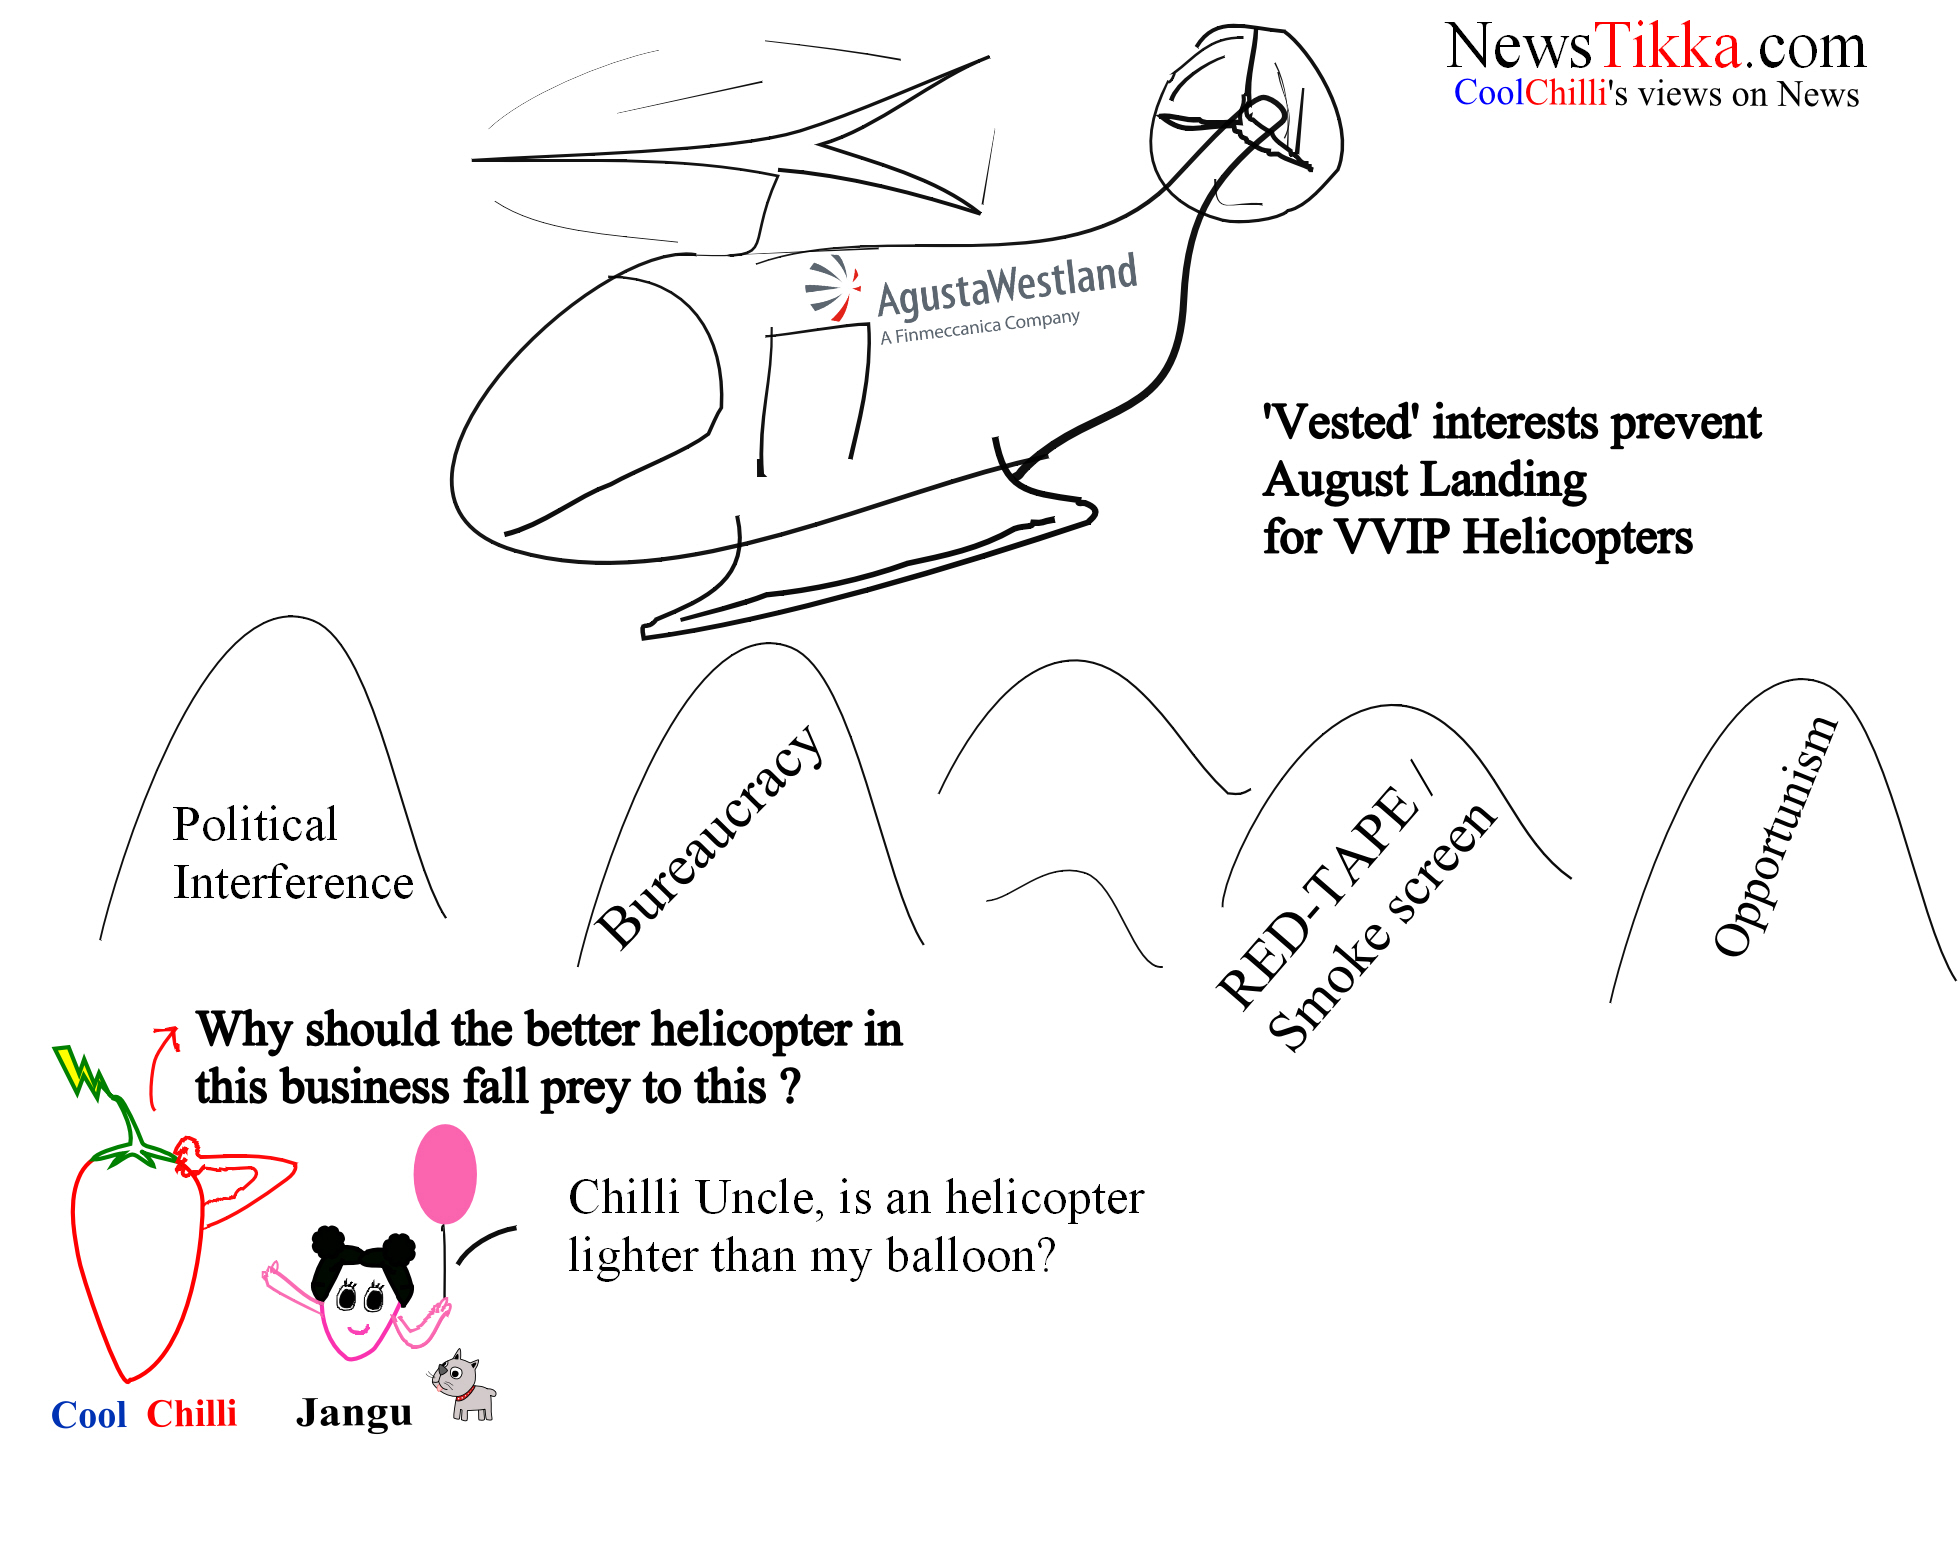 'Vested' interests prevent August Landing for VVIP Helicopters ,'Vested' interests prevent August Landing for VVIP Helicopters news is fun, news is life, news, newstikka.com, spread the humour around, cool chilli, cool chilli, newsy, jangu, news, tikka, humor, cool chilli's views on news, VVIP helicopter deal , finmeccanica, agusta westland, helicopters,